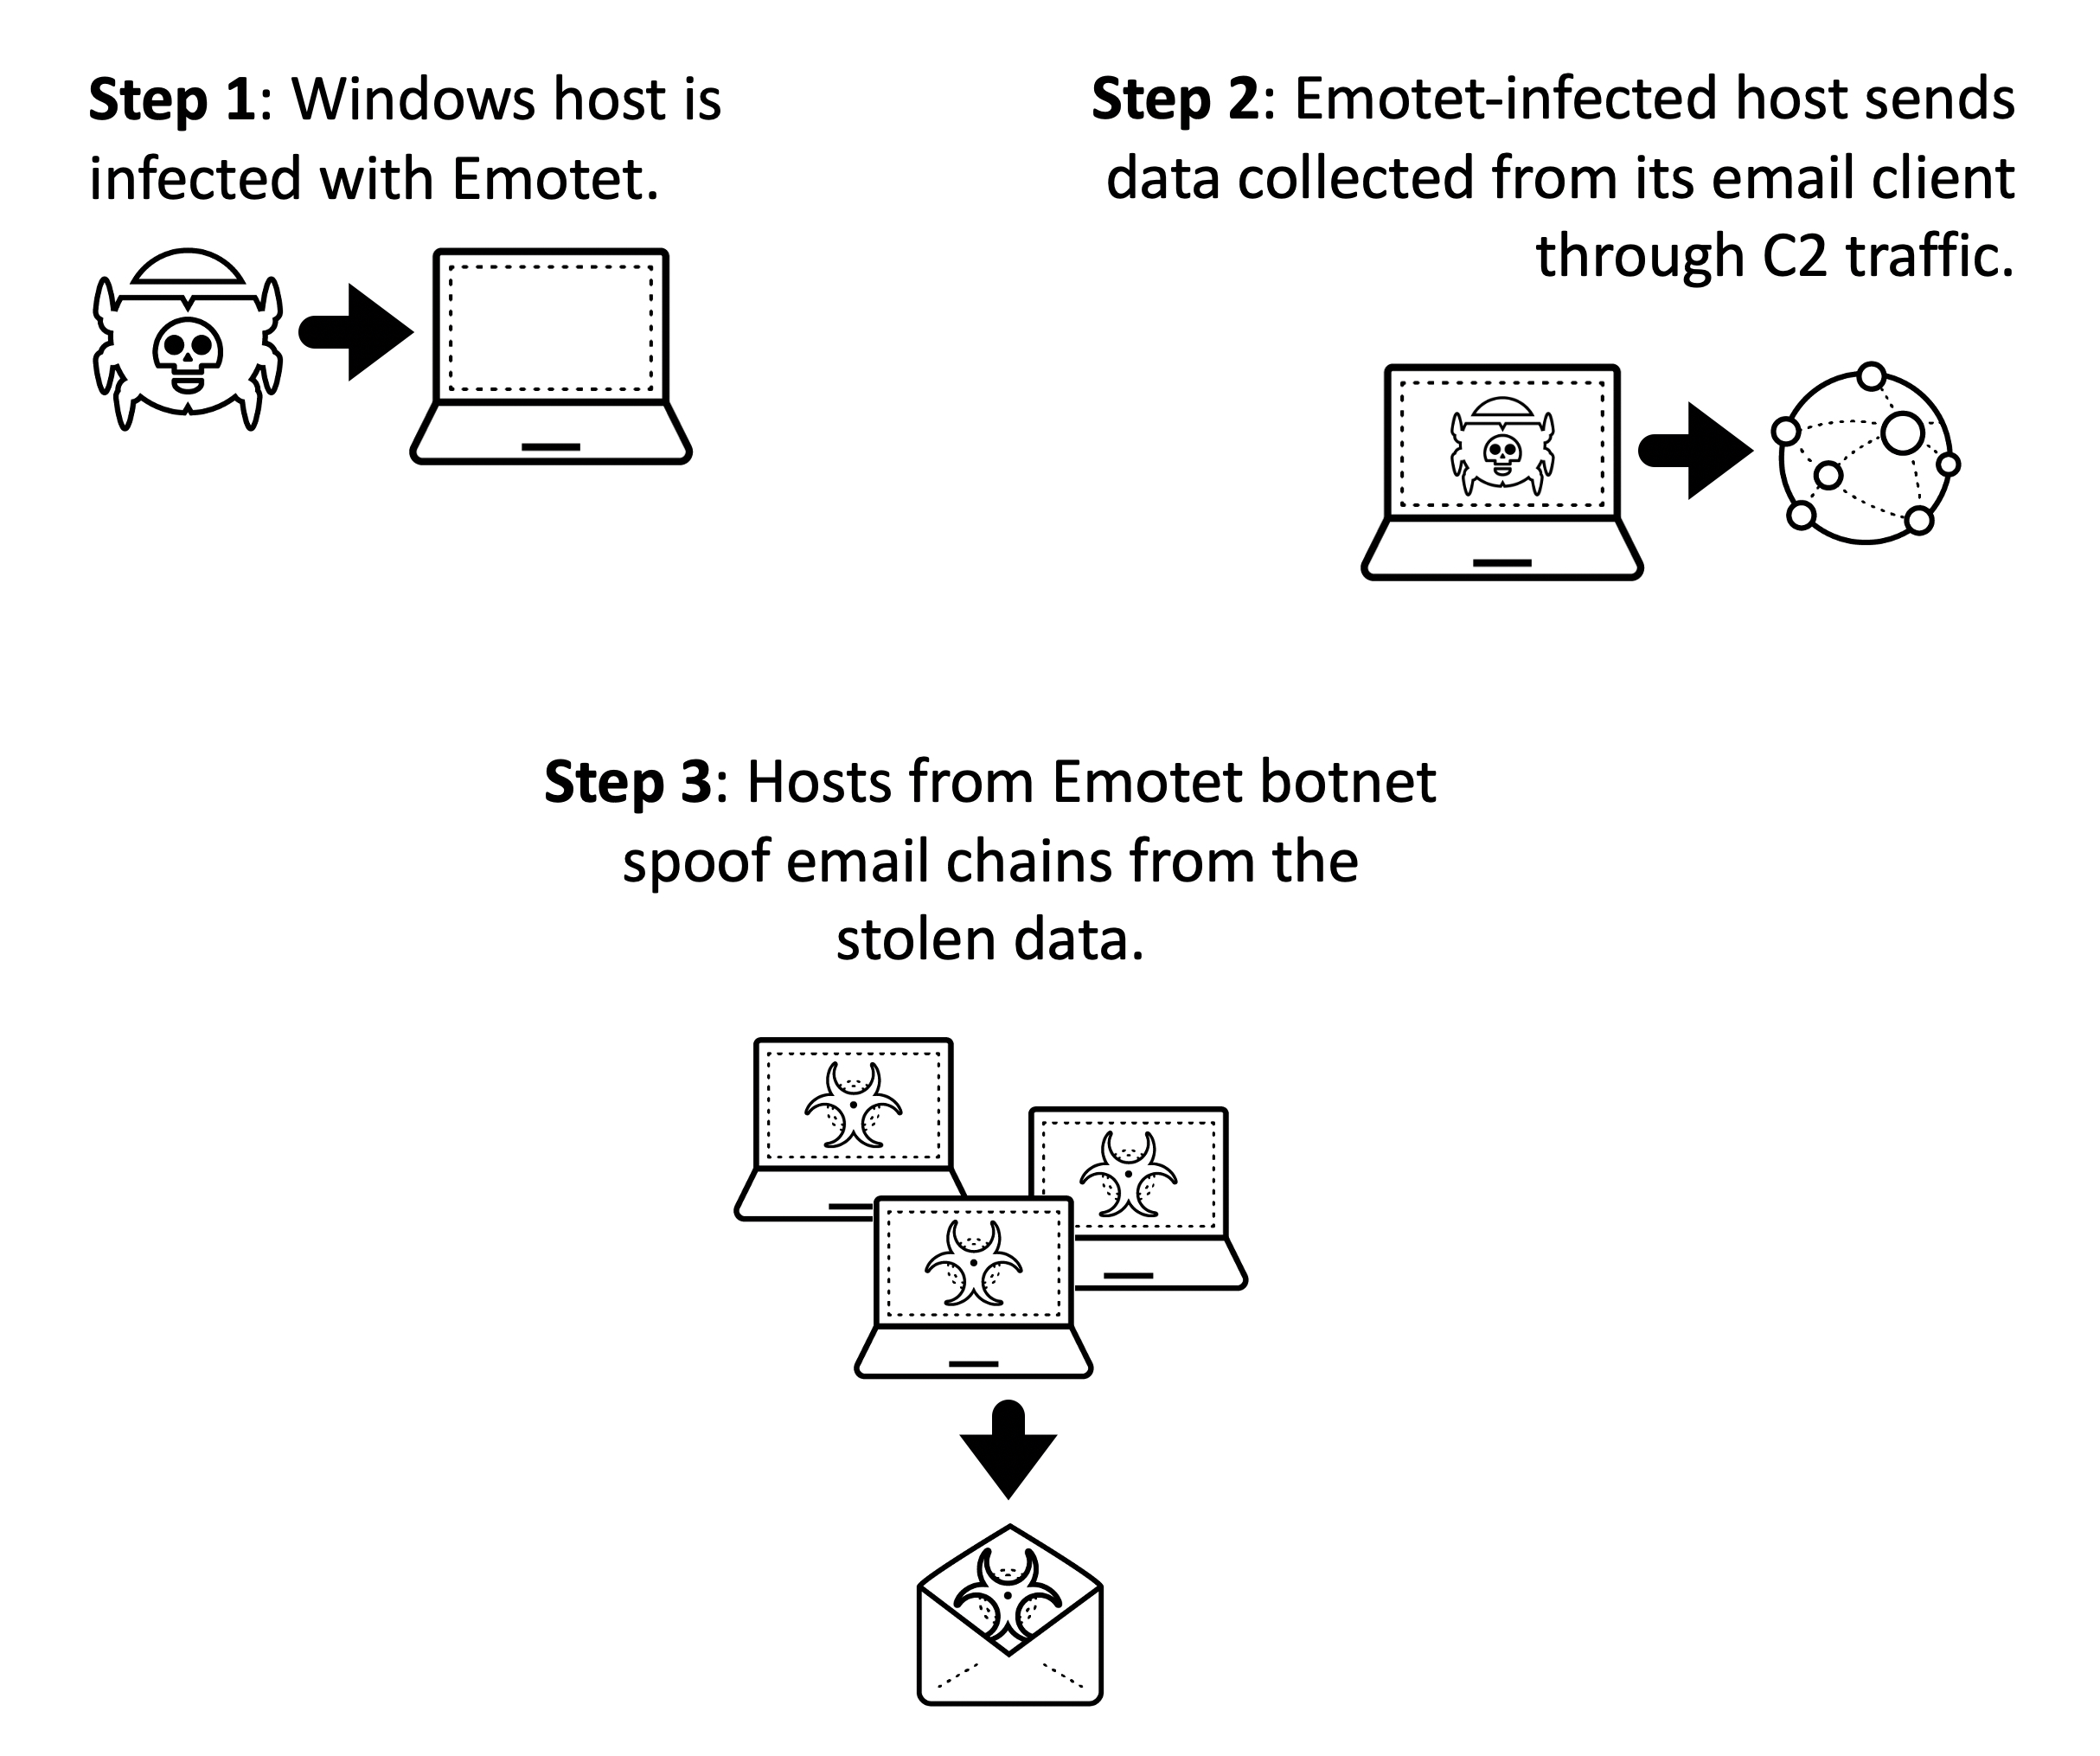 Step 1: Windows host is infected with Emotet; Step 2: Emotet-infected host sends data collected from its email client through C2 traffic; Step 4: Hosts from Emotet botnet spoof email chains from the stolen data.